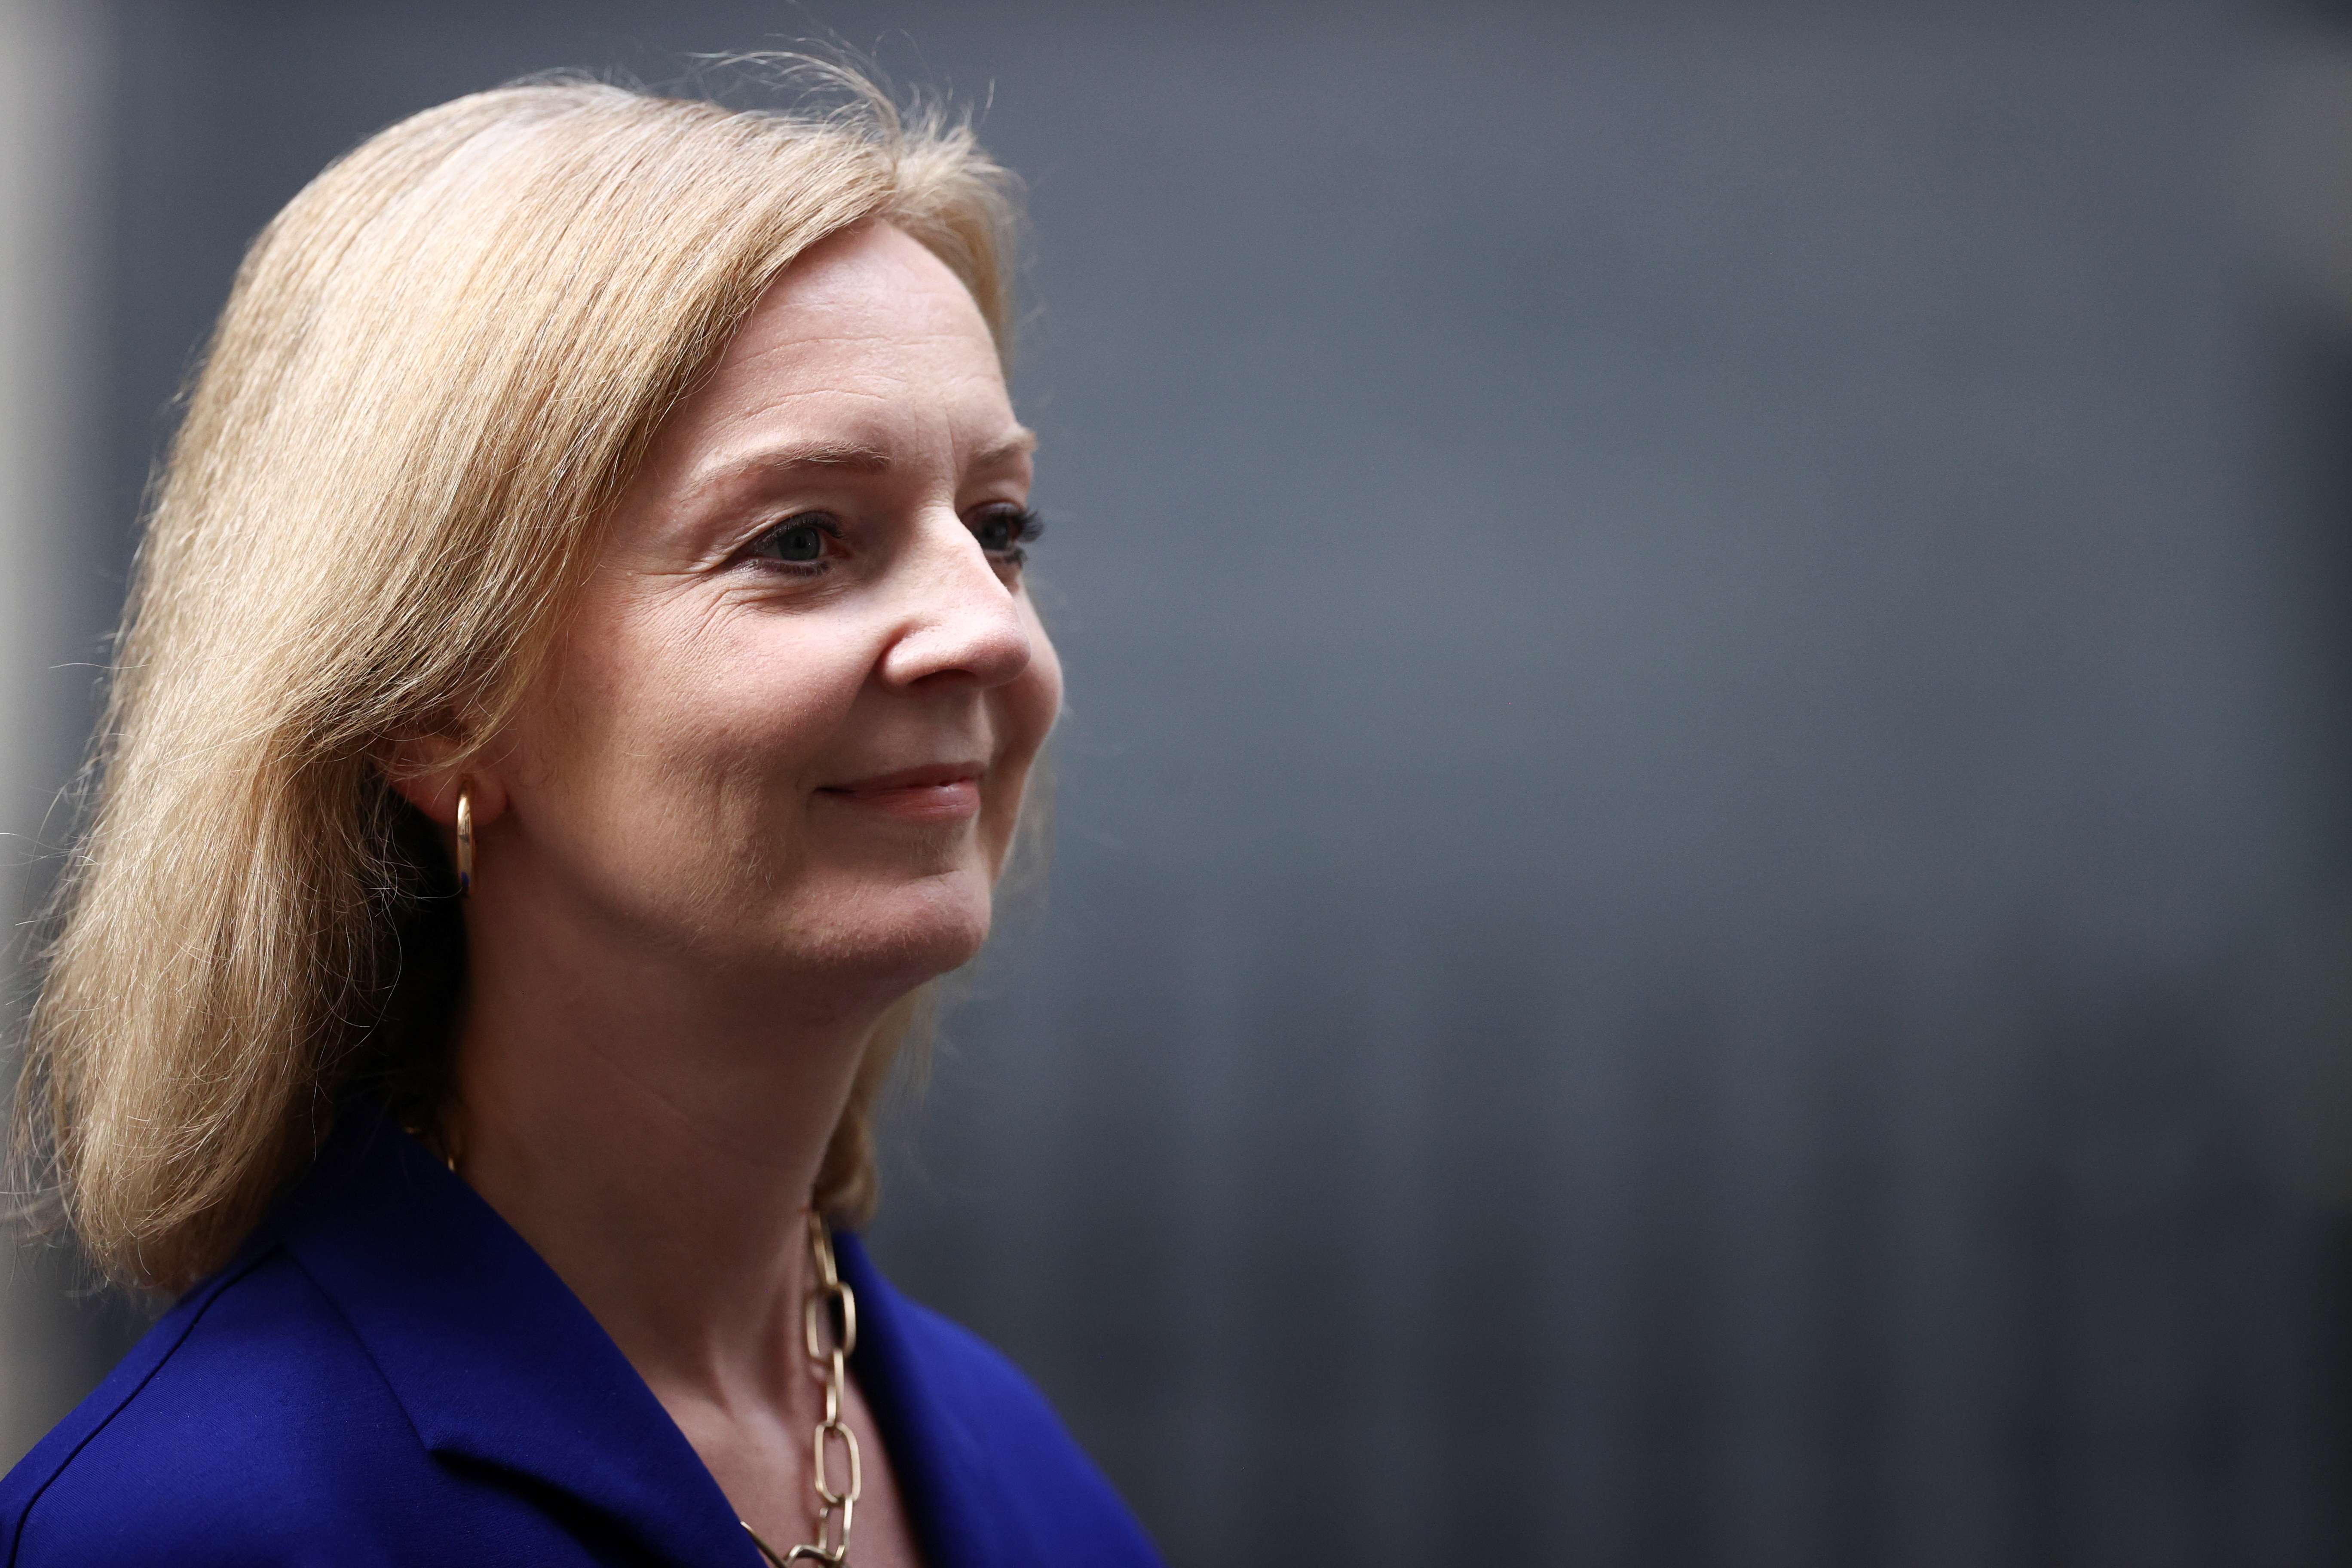 Britain's recently appointed Foreign Secretary Liz Truss walks outside Downing Street in London, Britain, September 15, 2021. REUTERS/Hannah McKay